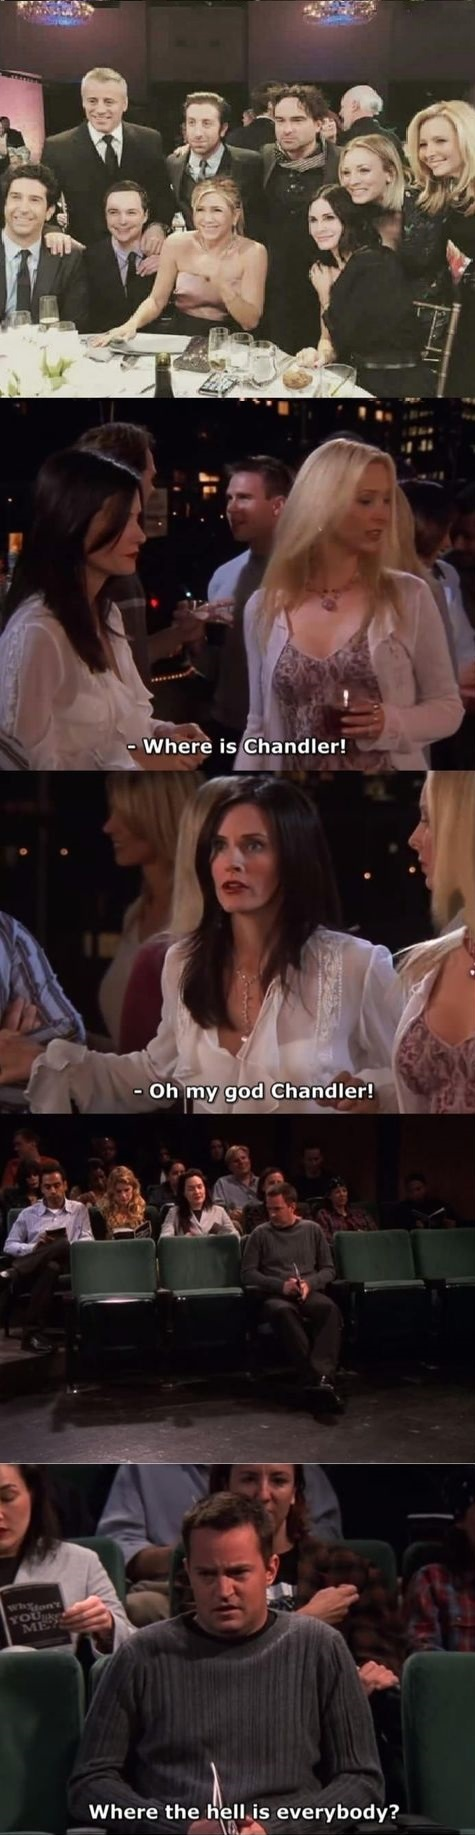 Where's Chandler?